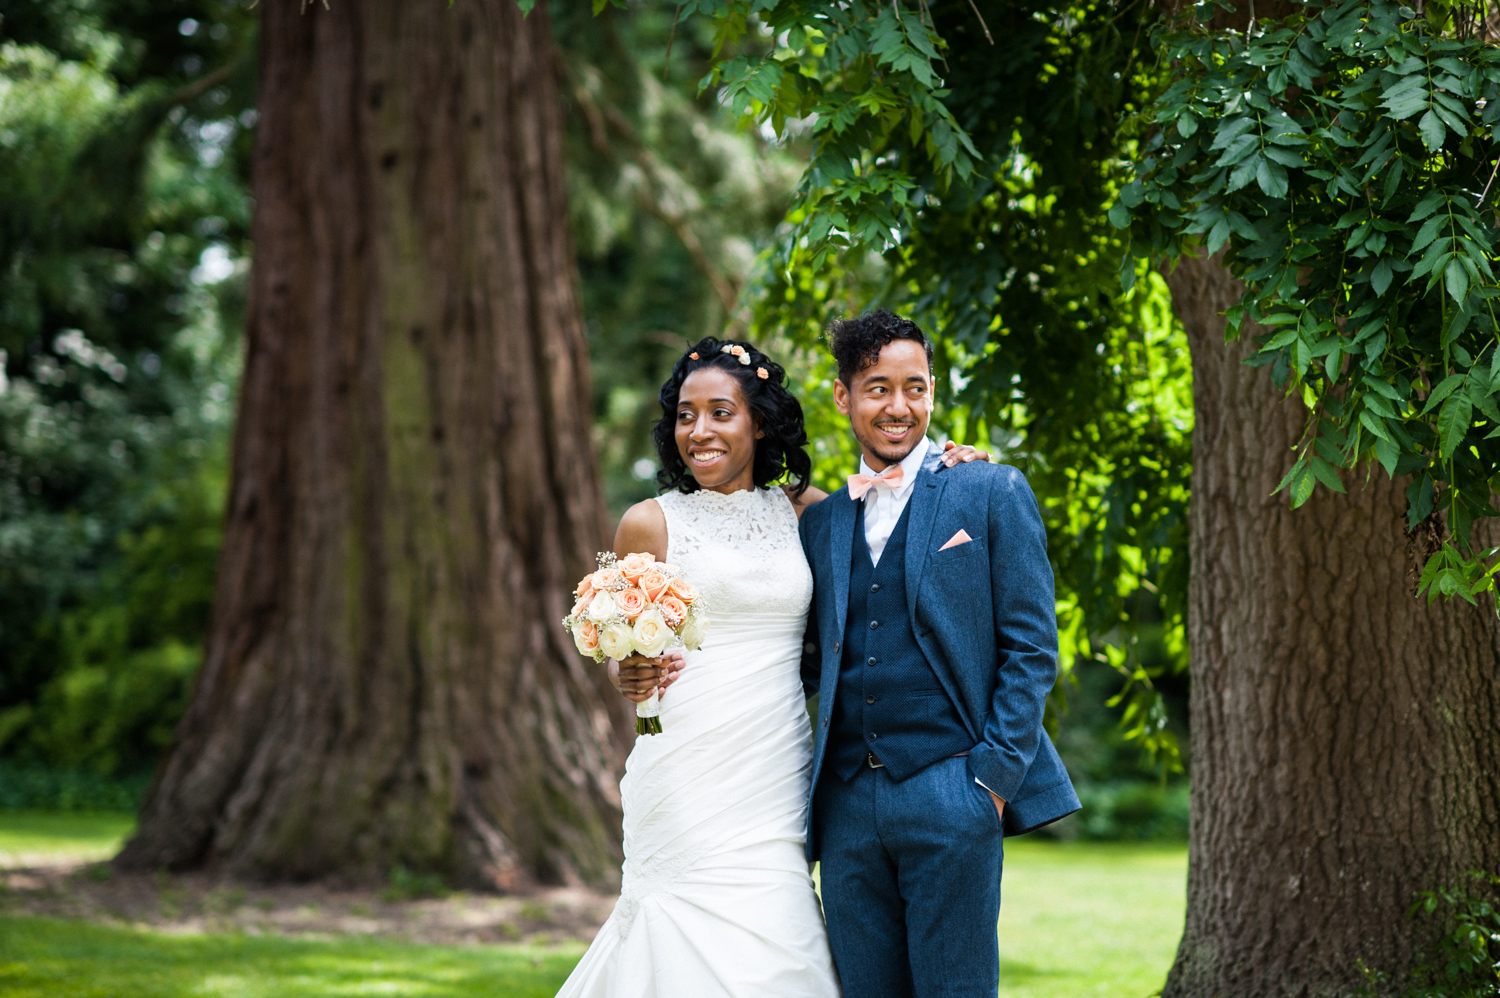 wedding-photographer-st-ives-cambs-10.jpg